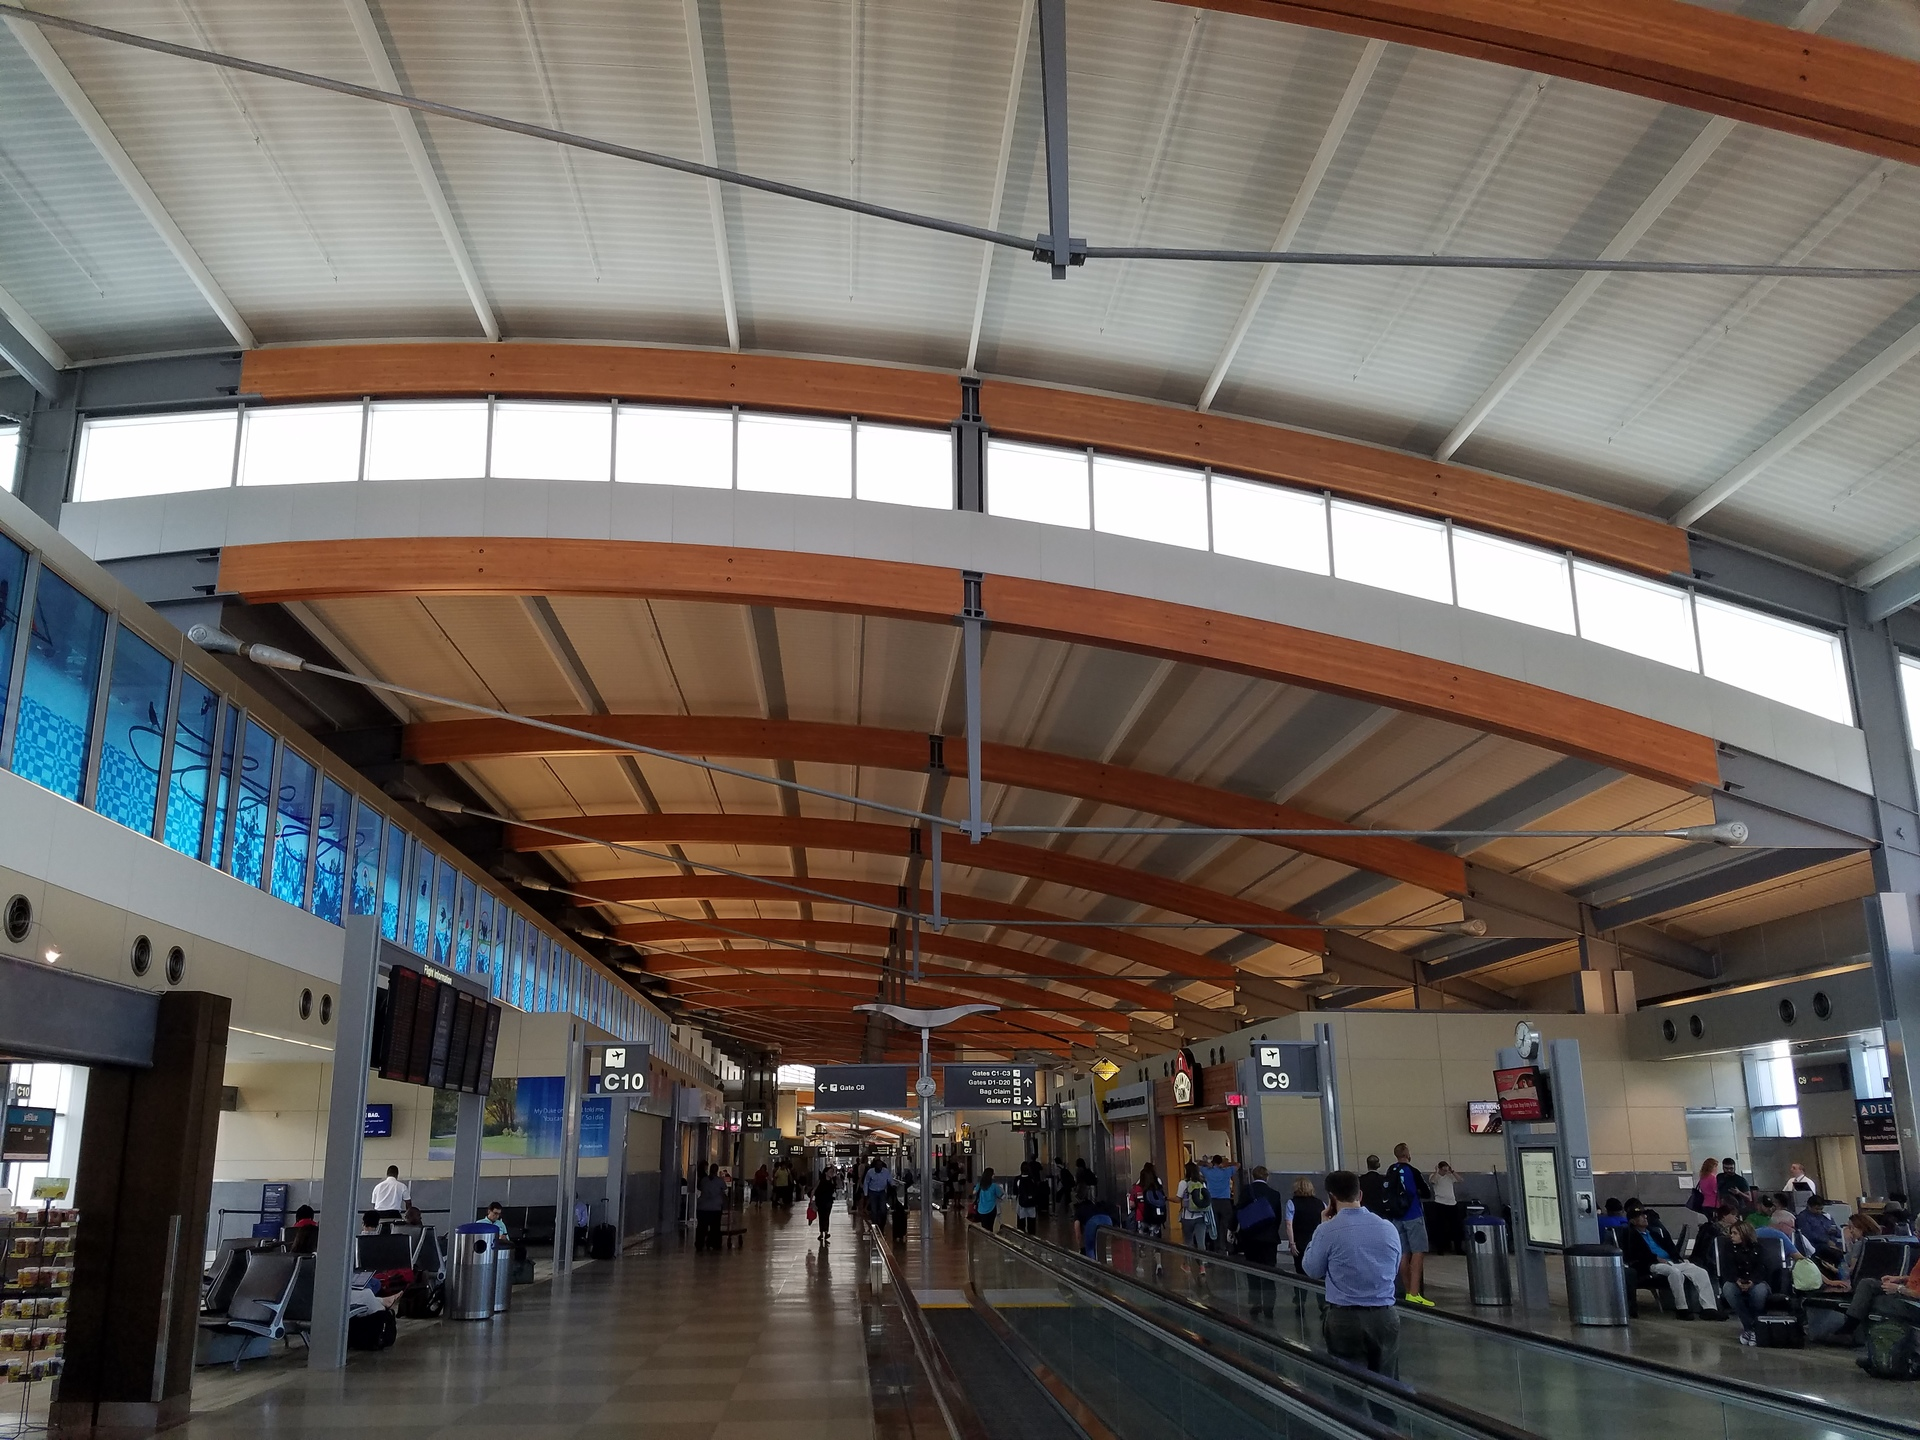 Airport, Ceiling, Subway System, Business, Railway